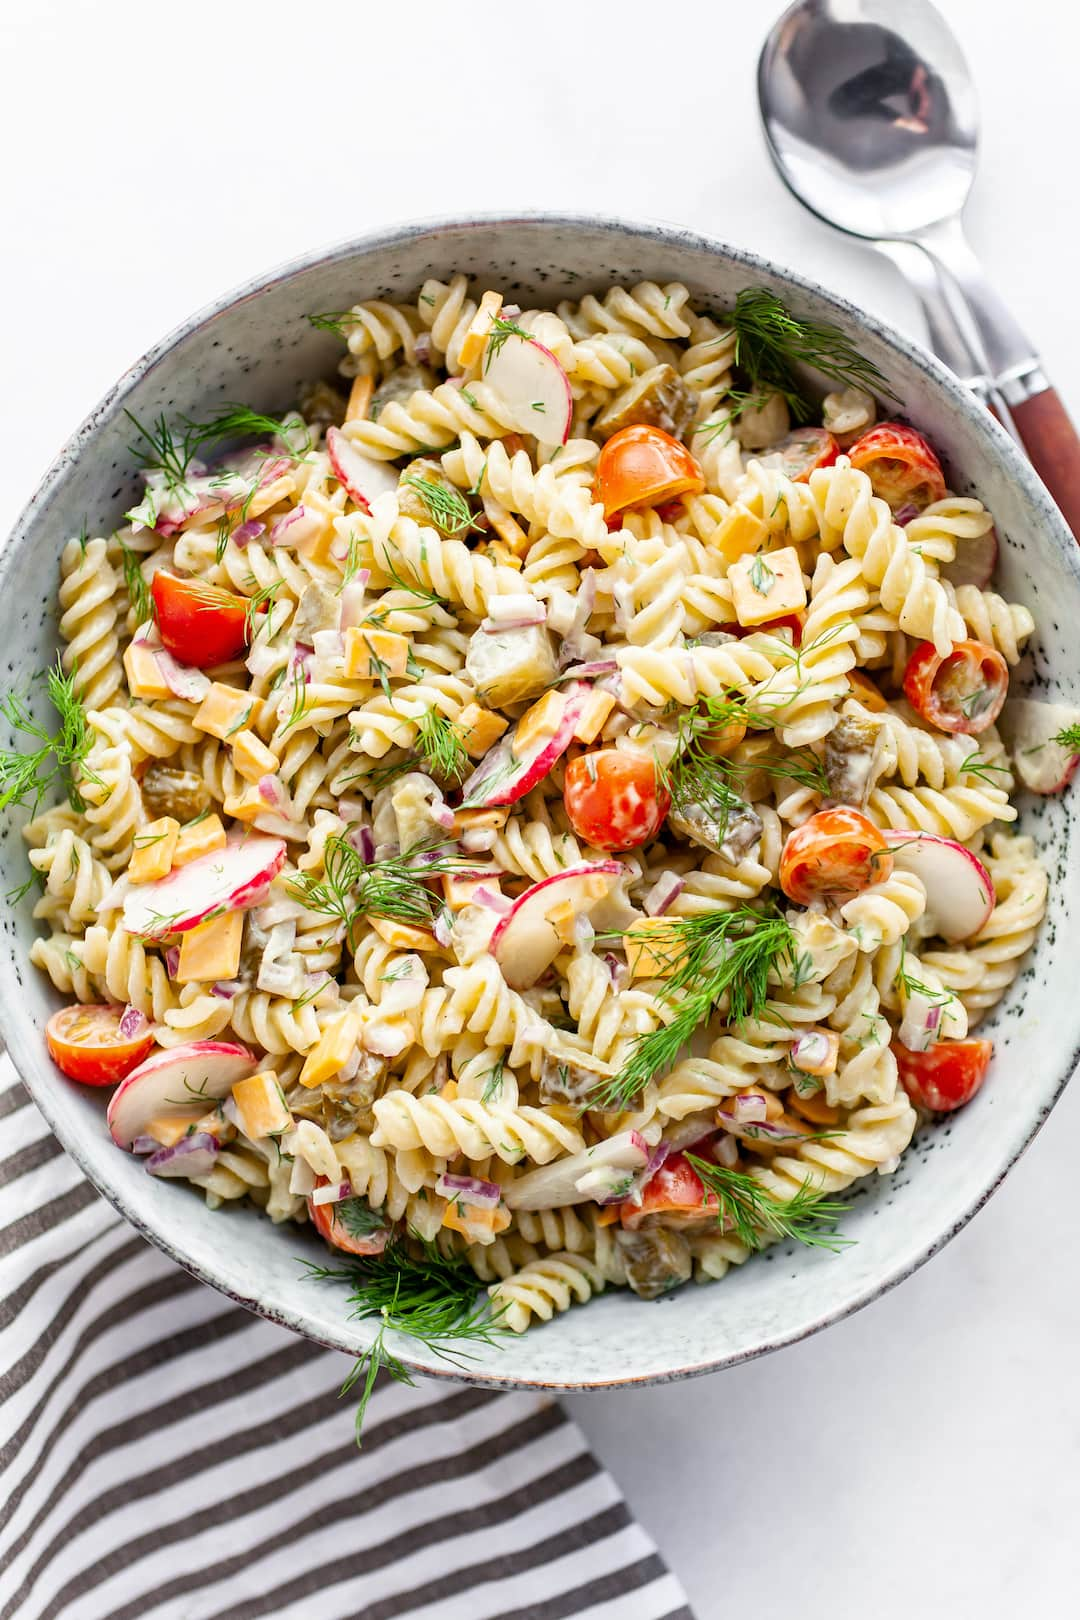 Best Ever Healthy Dill Pickle Pasta Salad